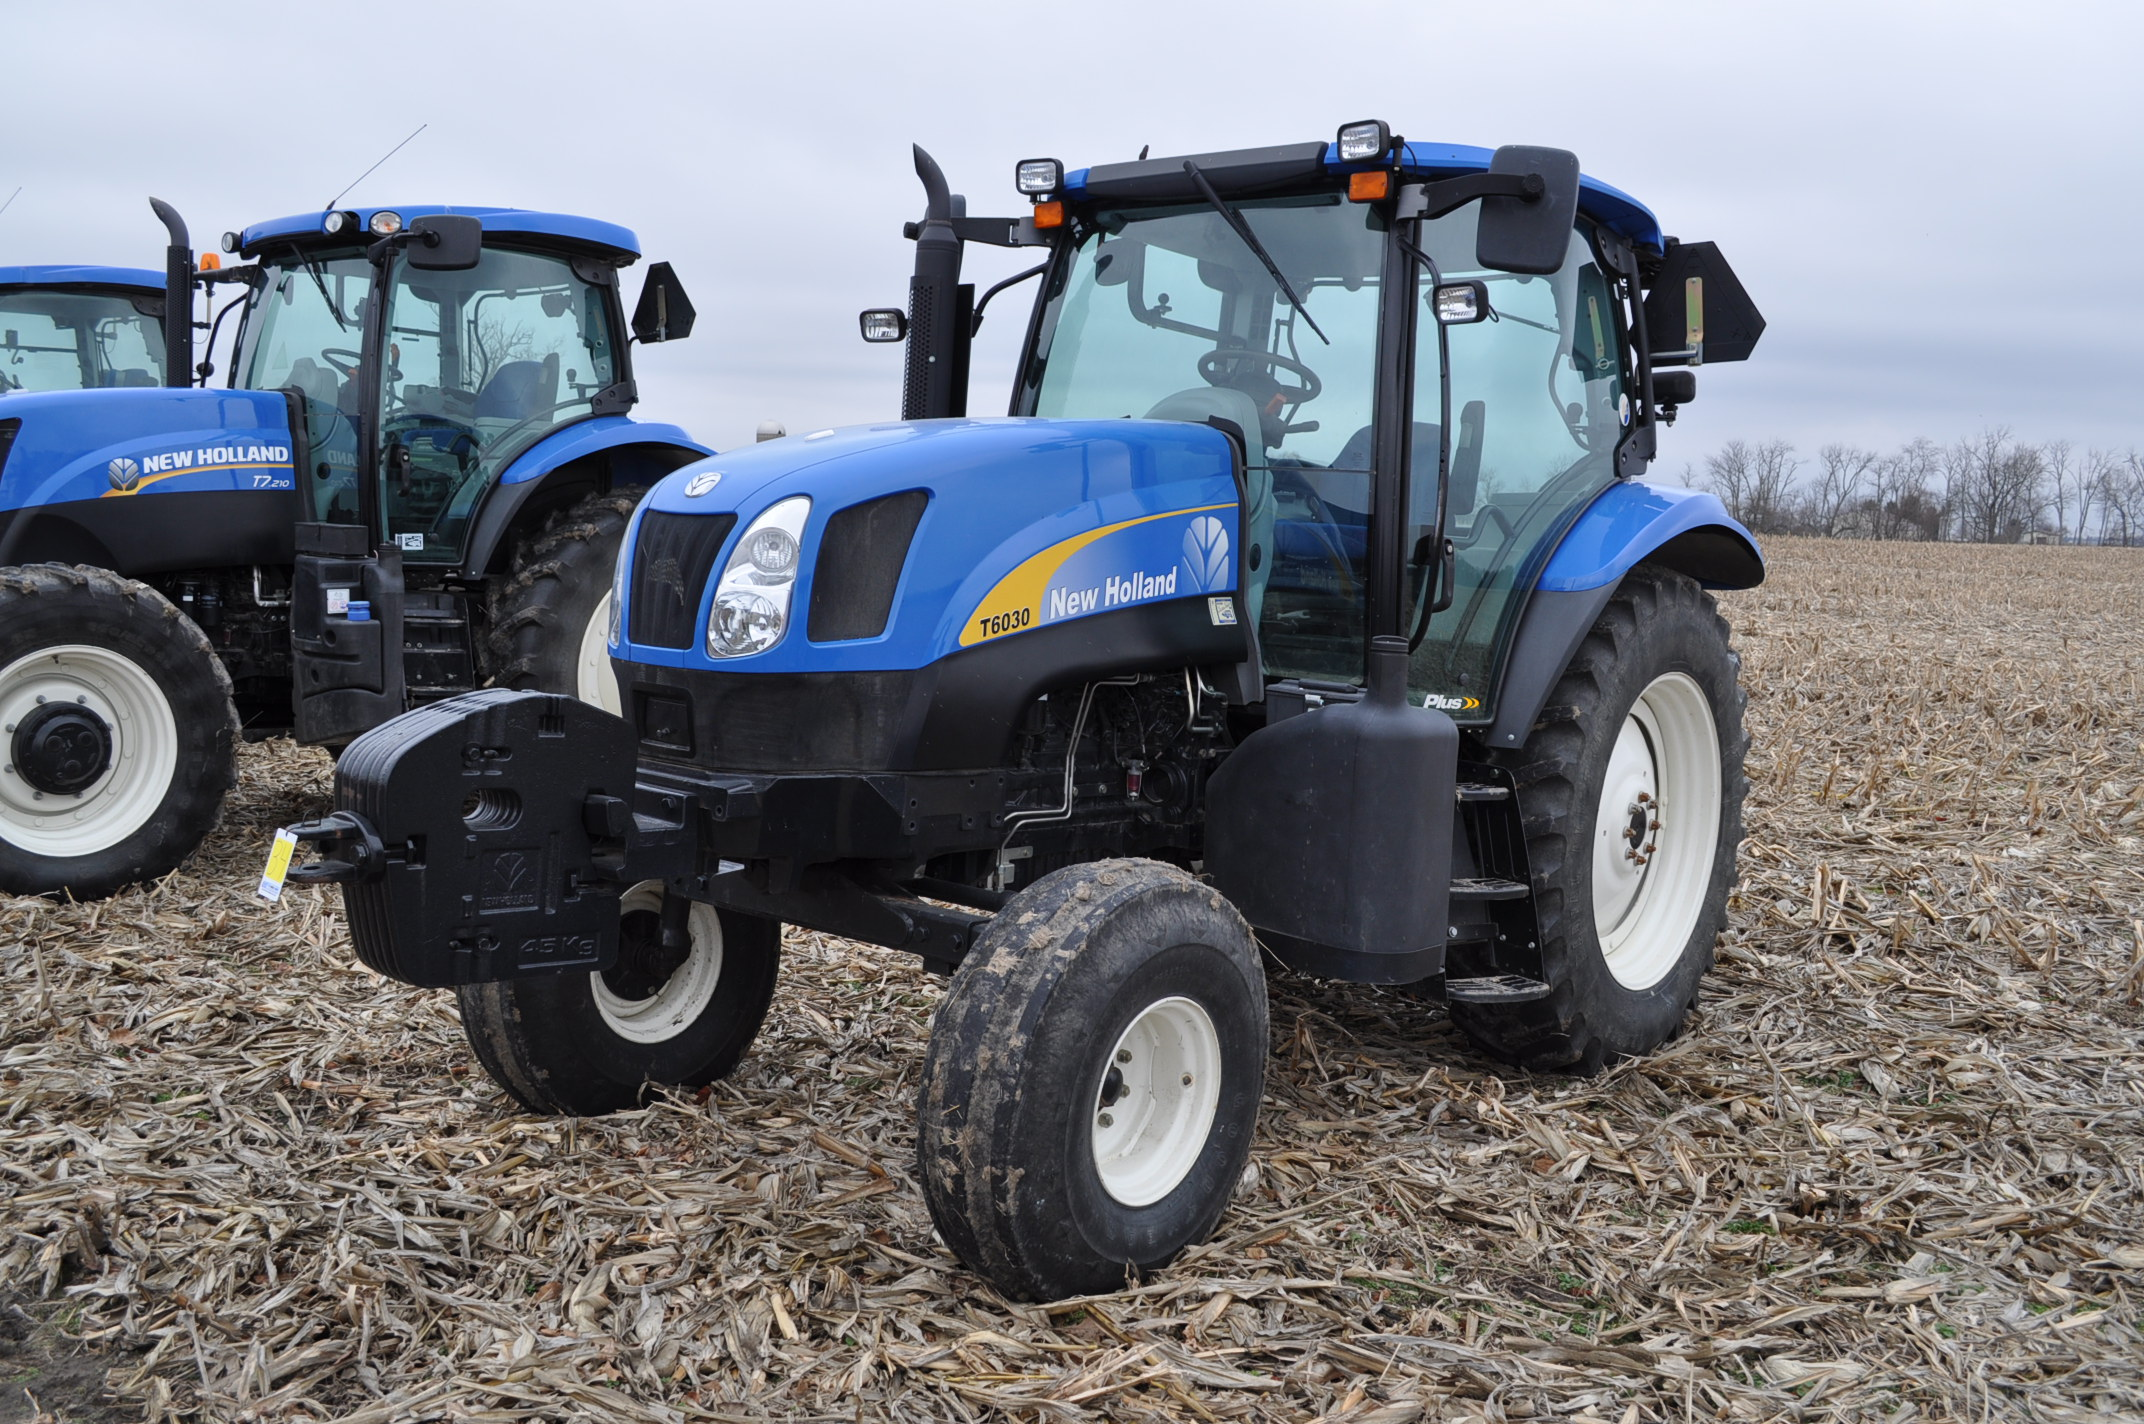 New Holland T6030 tractor, CHA, 16.9 R 38 tires, 11.00-16 front, 6 front wts, 3 hyd remotes, 3 pt,